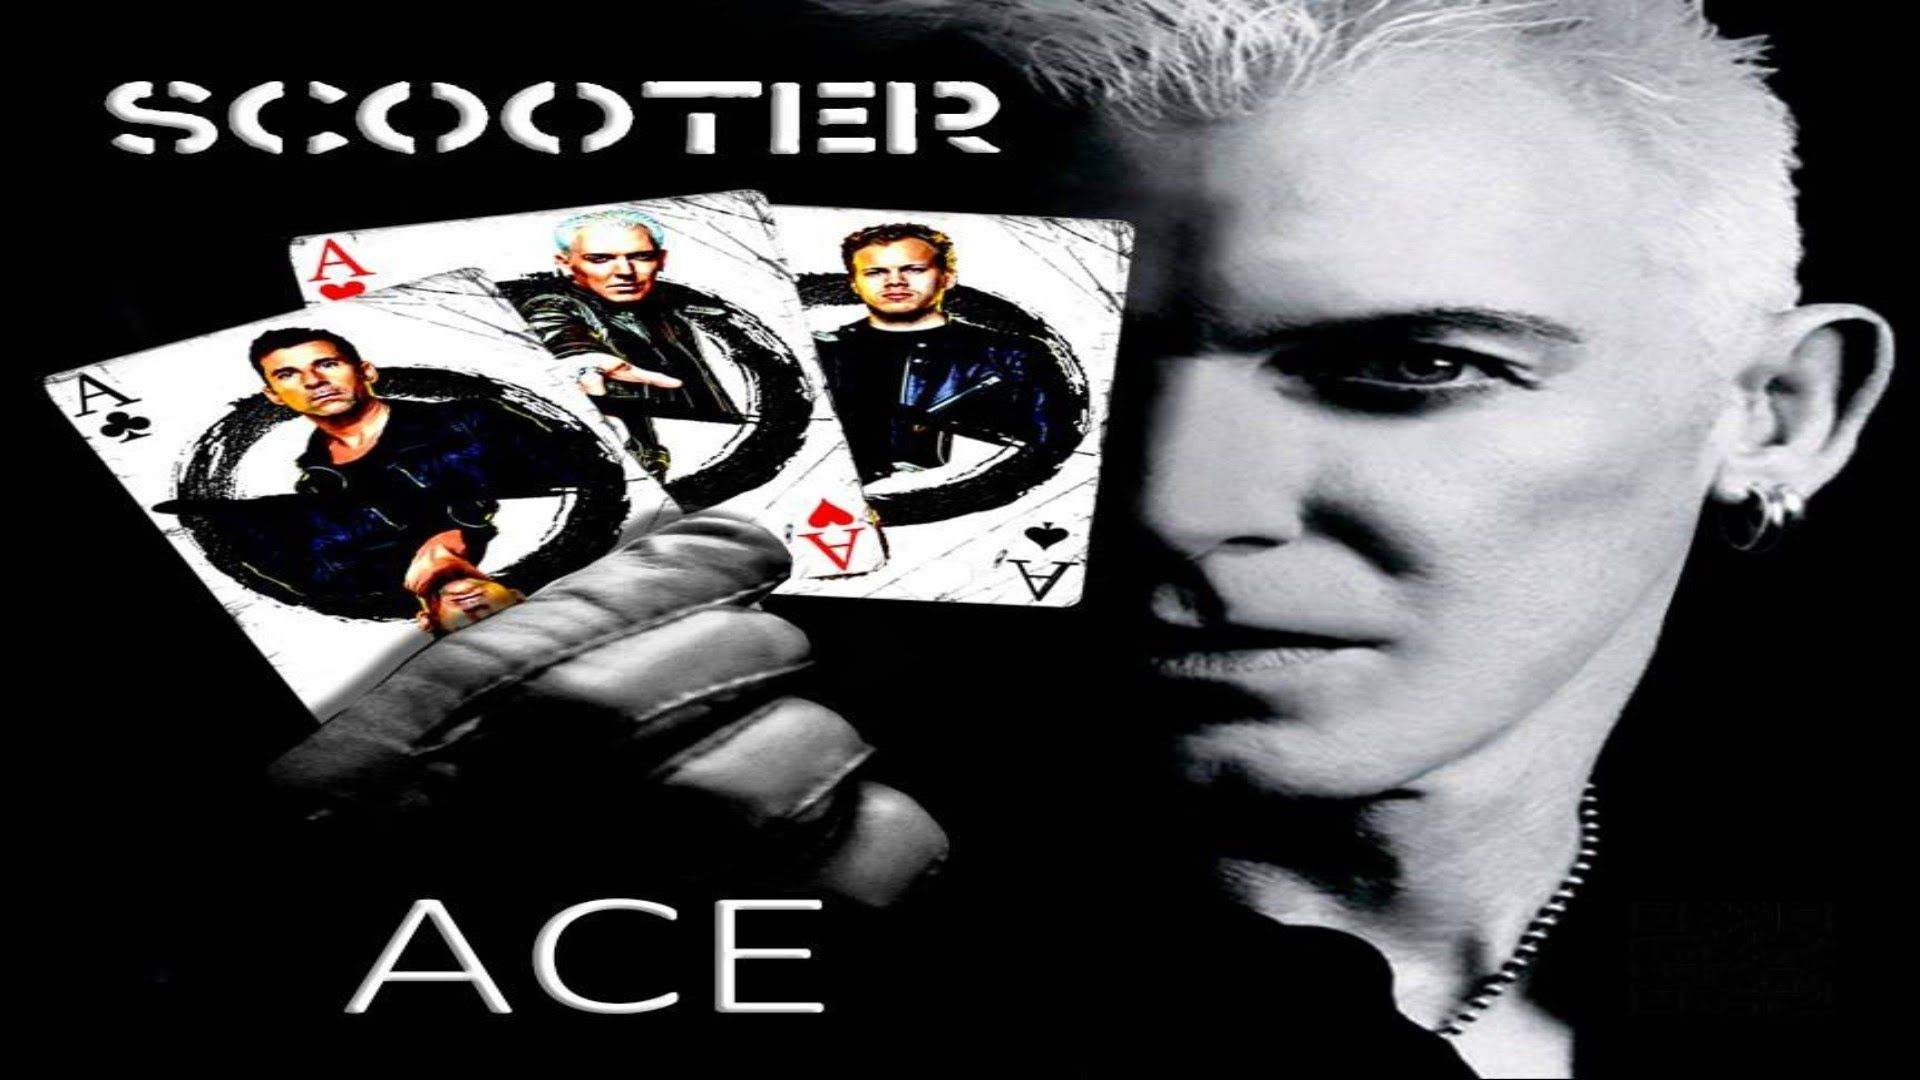 Scooter ACE (Album) Band posters, Scooter, Cool bands